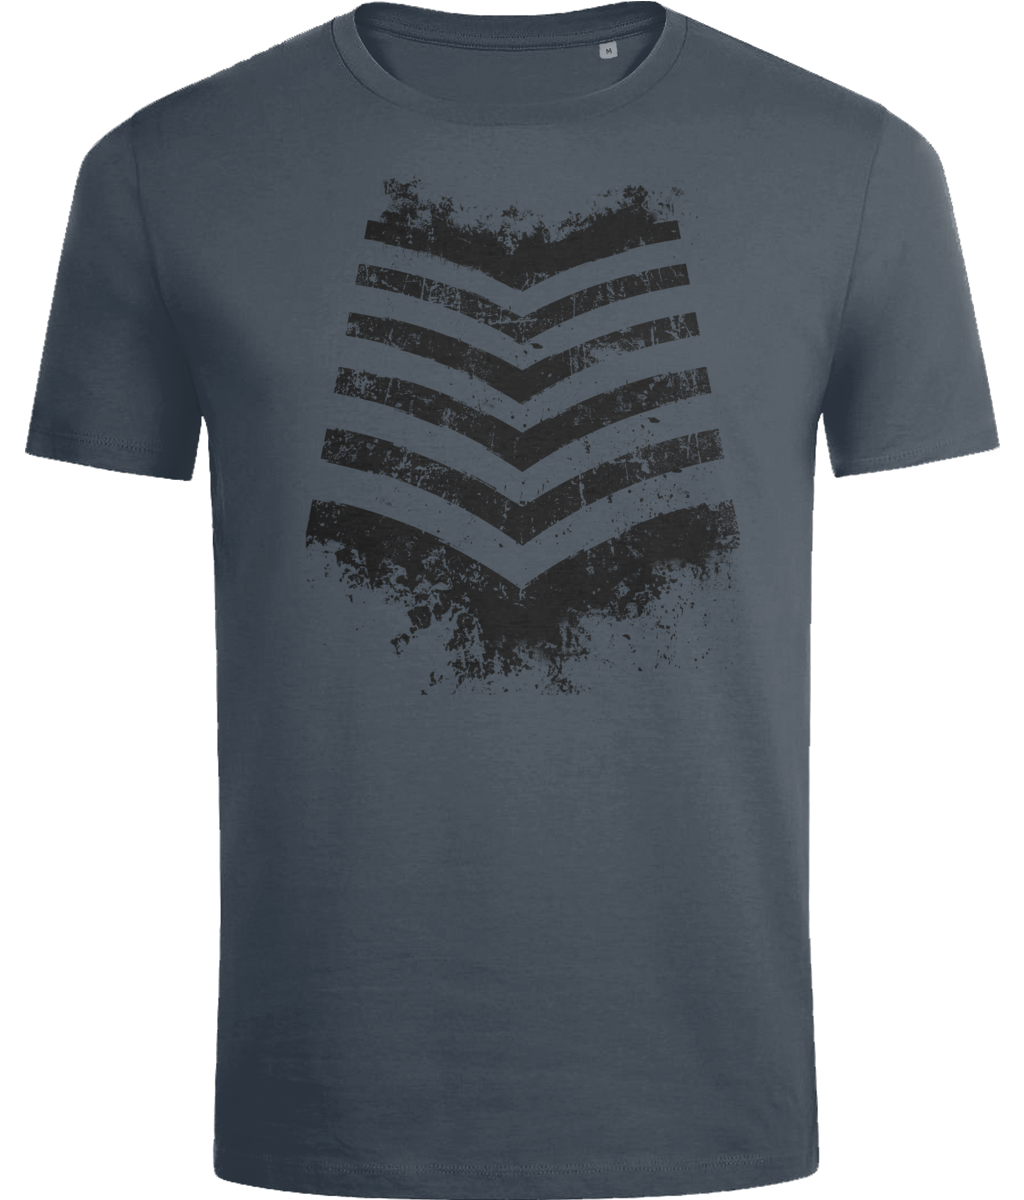 Chevrons T-Shirt